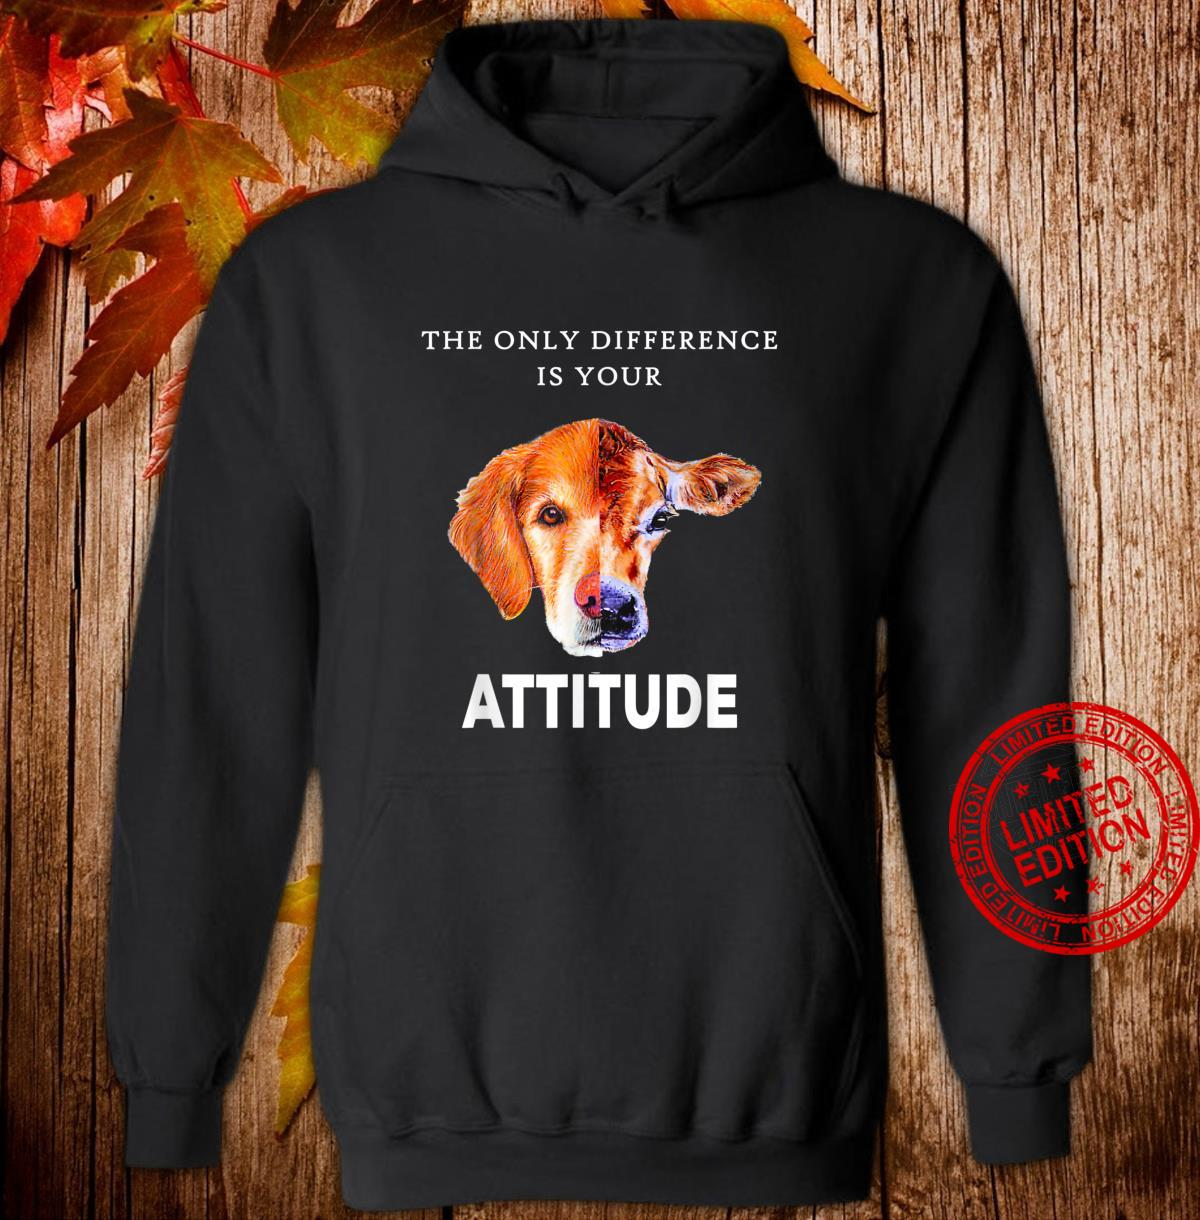 The Only Difference Is Your Attitude Shirt Shirt hoodie